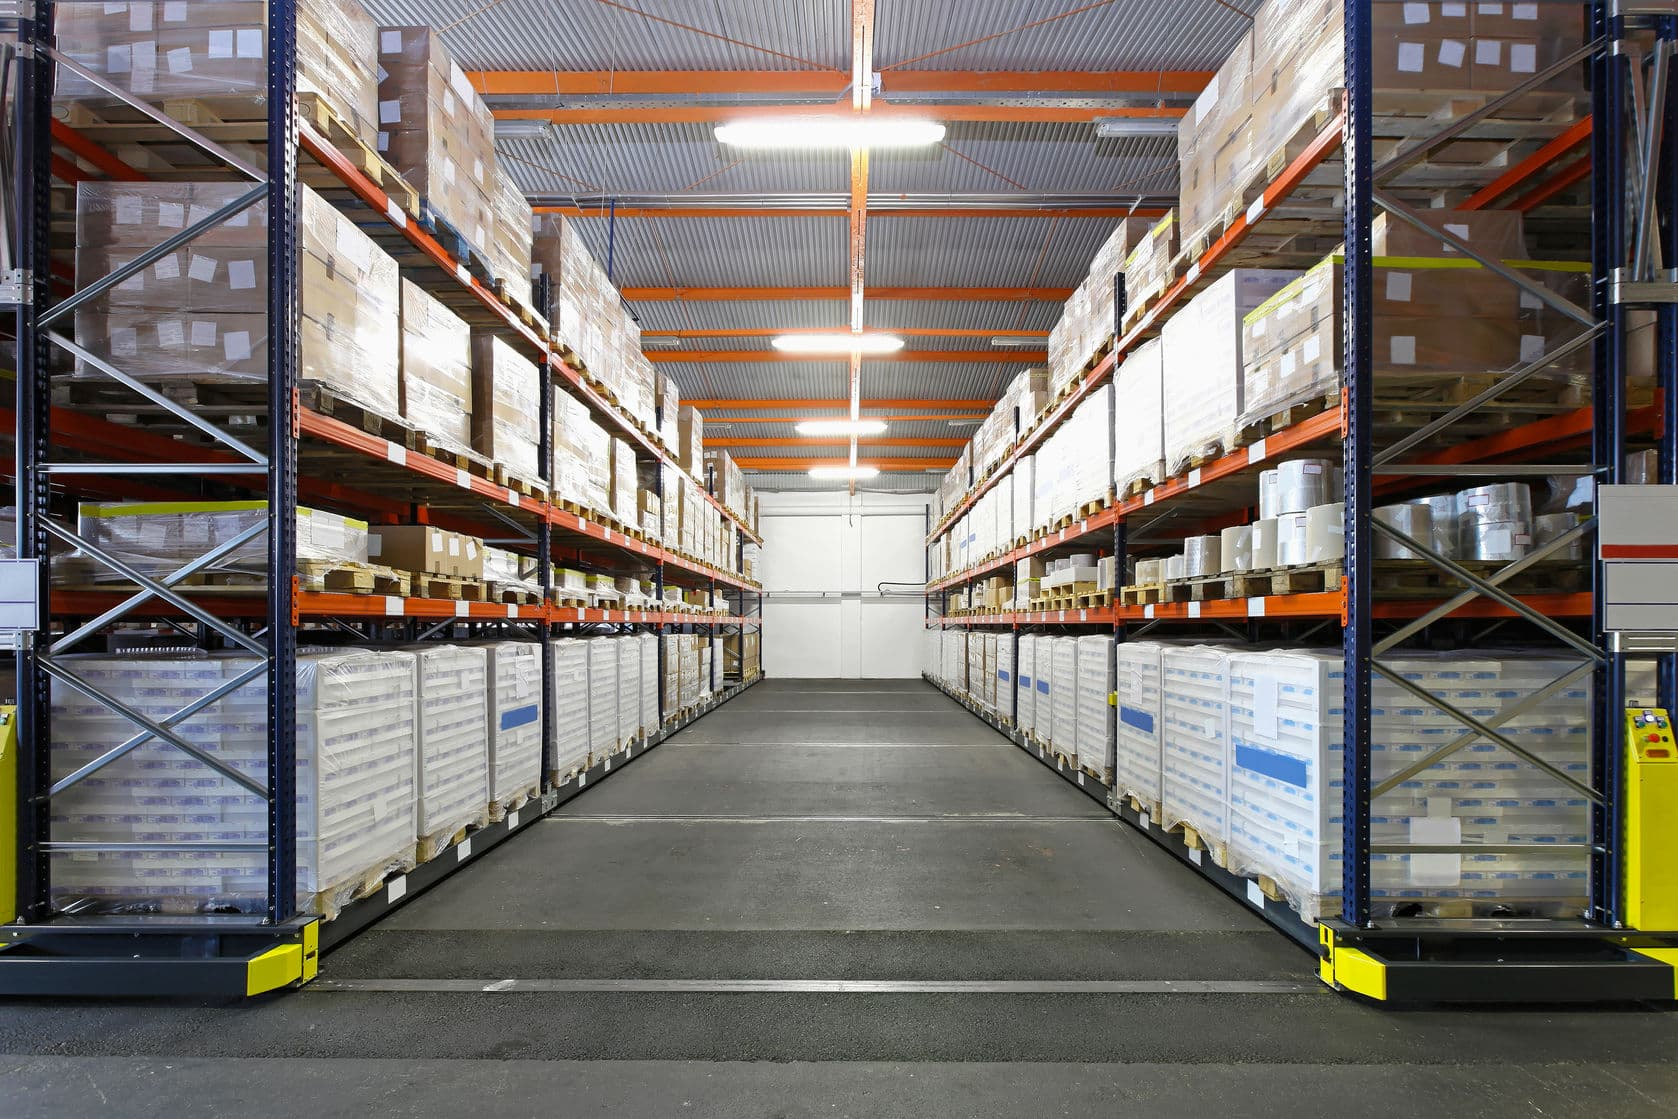 Use of RFID in warehouses